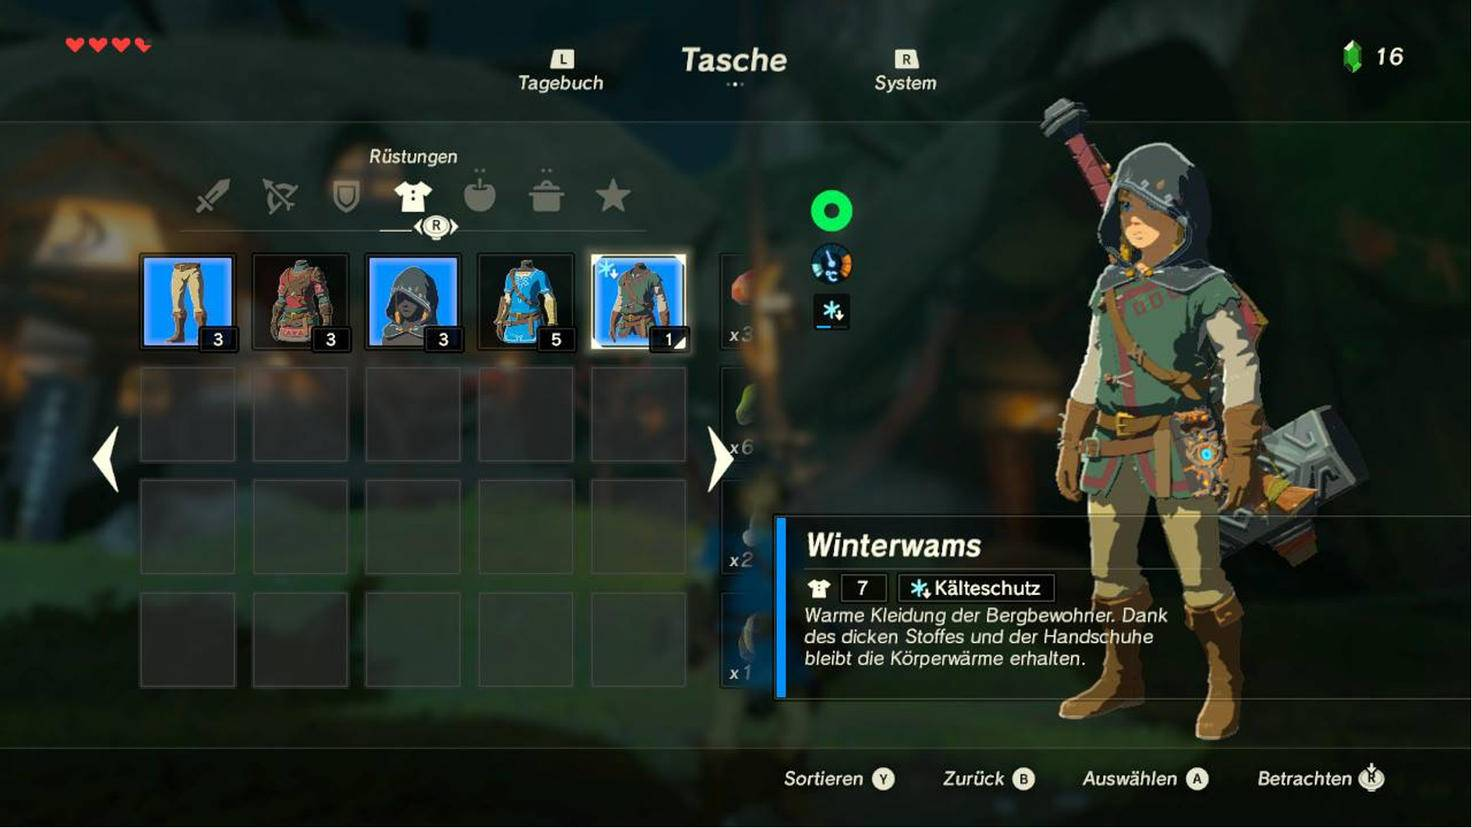 Breath Of The Wild Schreine Karte.Zelda Breath Of The Wild Warme Kleidung Bekommen